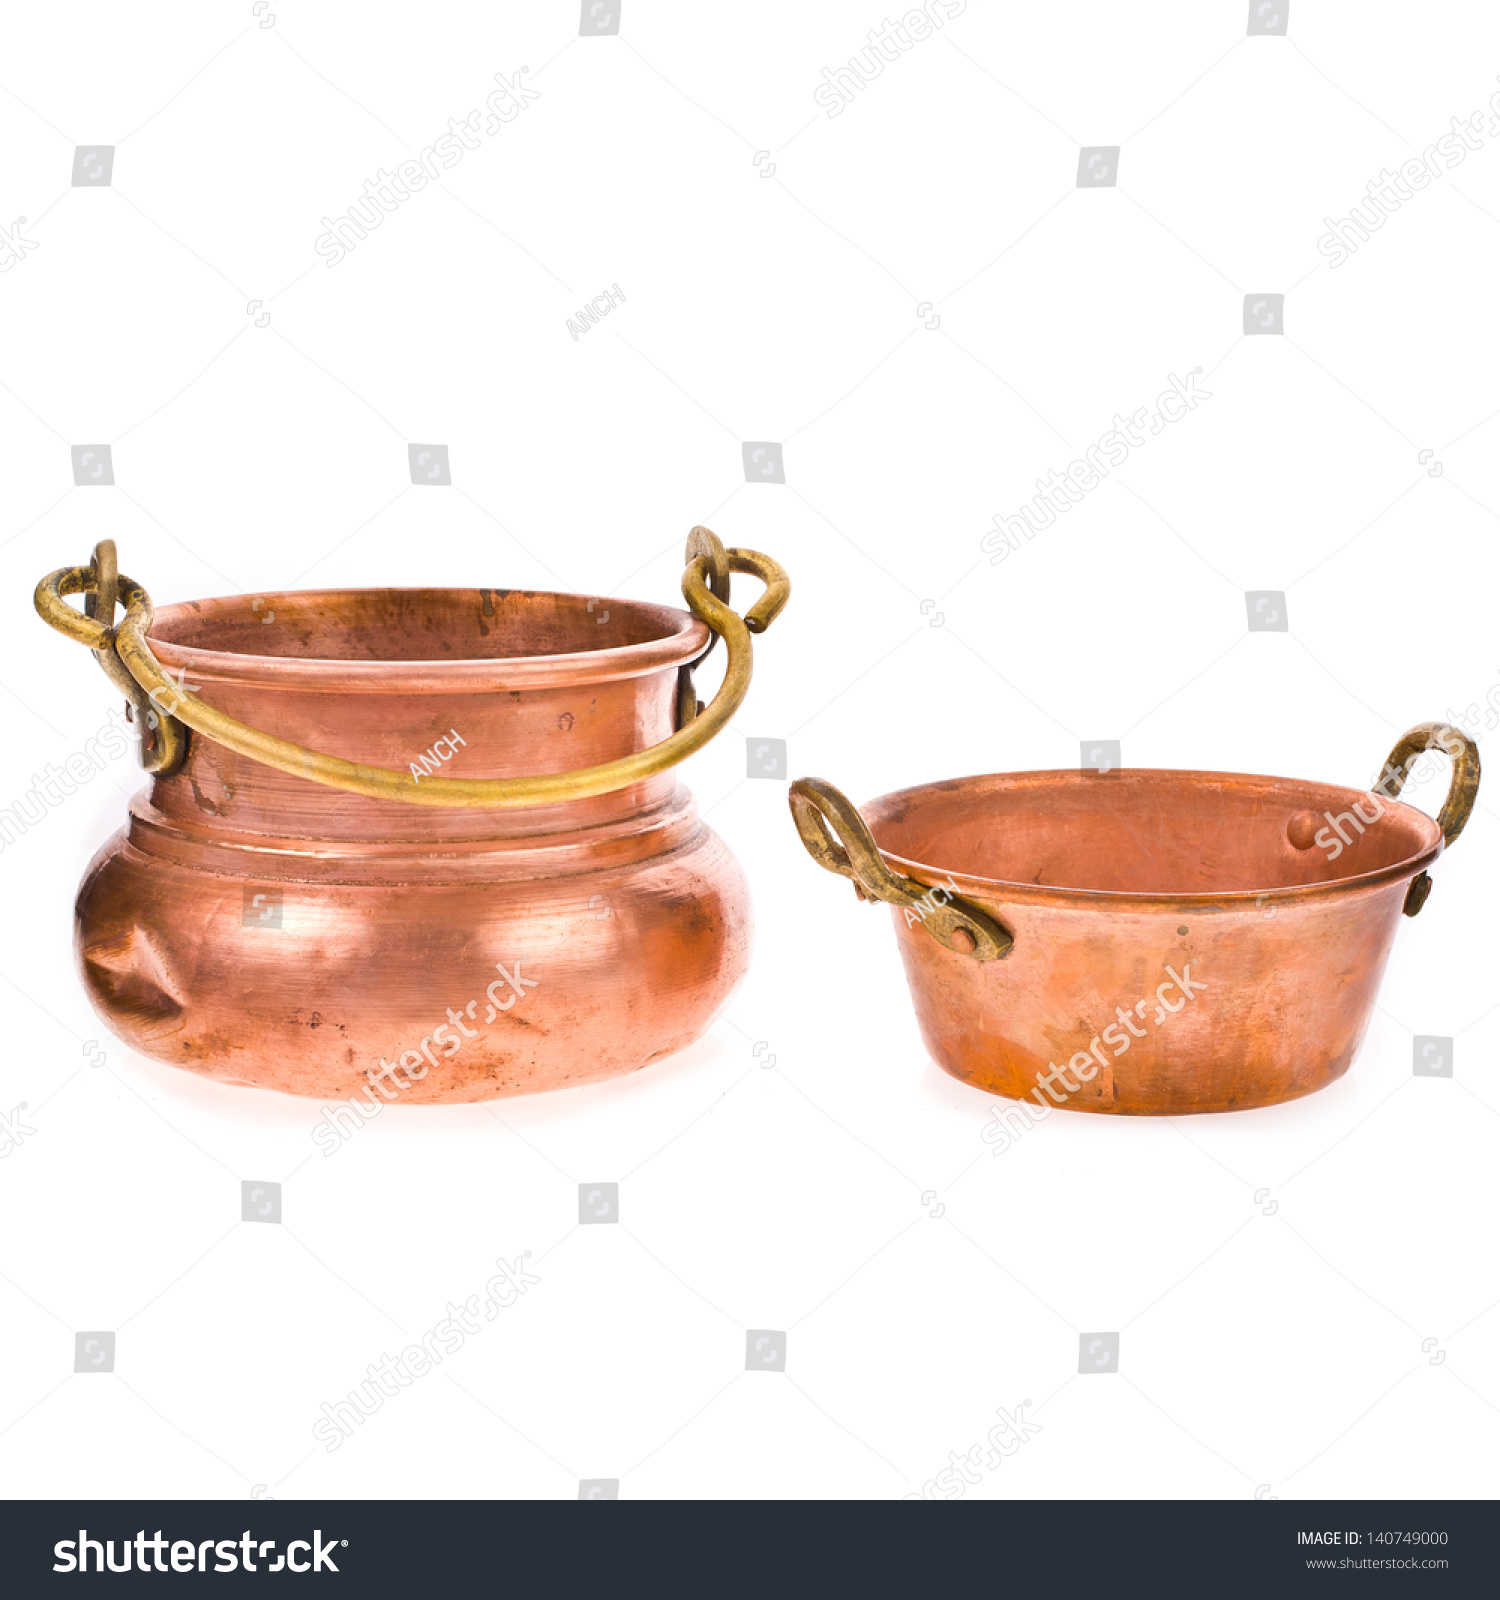 Two Antique Copper Kitchen Utensils Isolated On White Background Stock